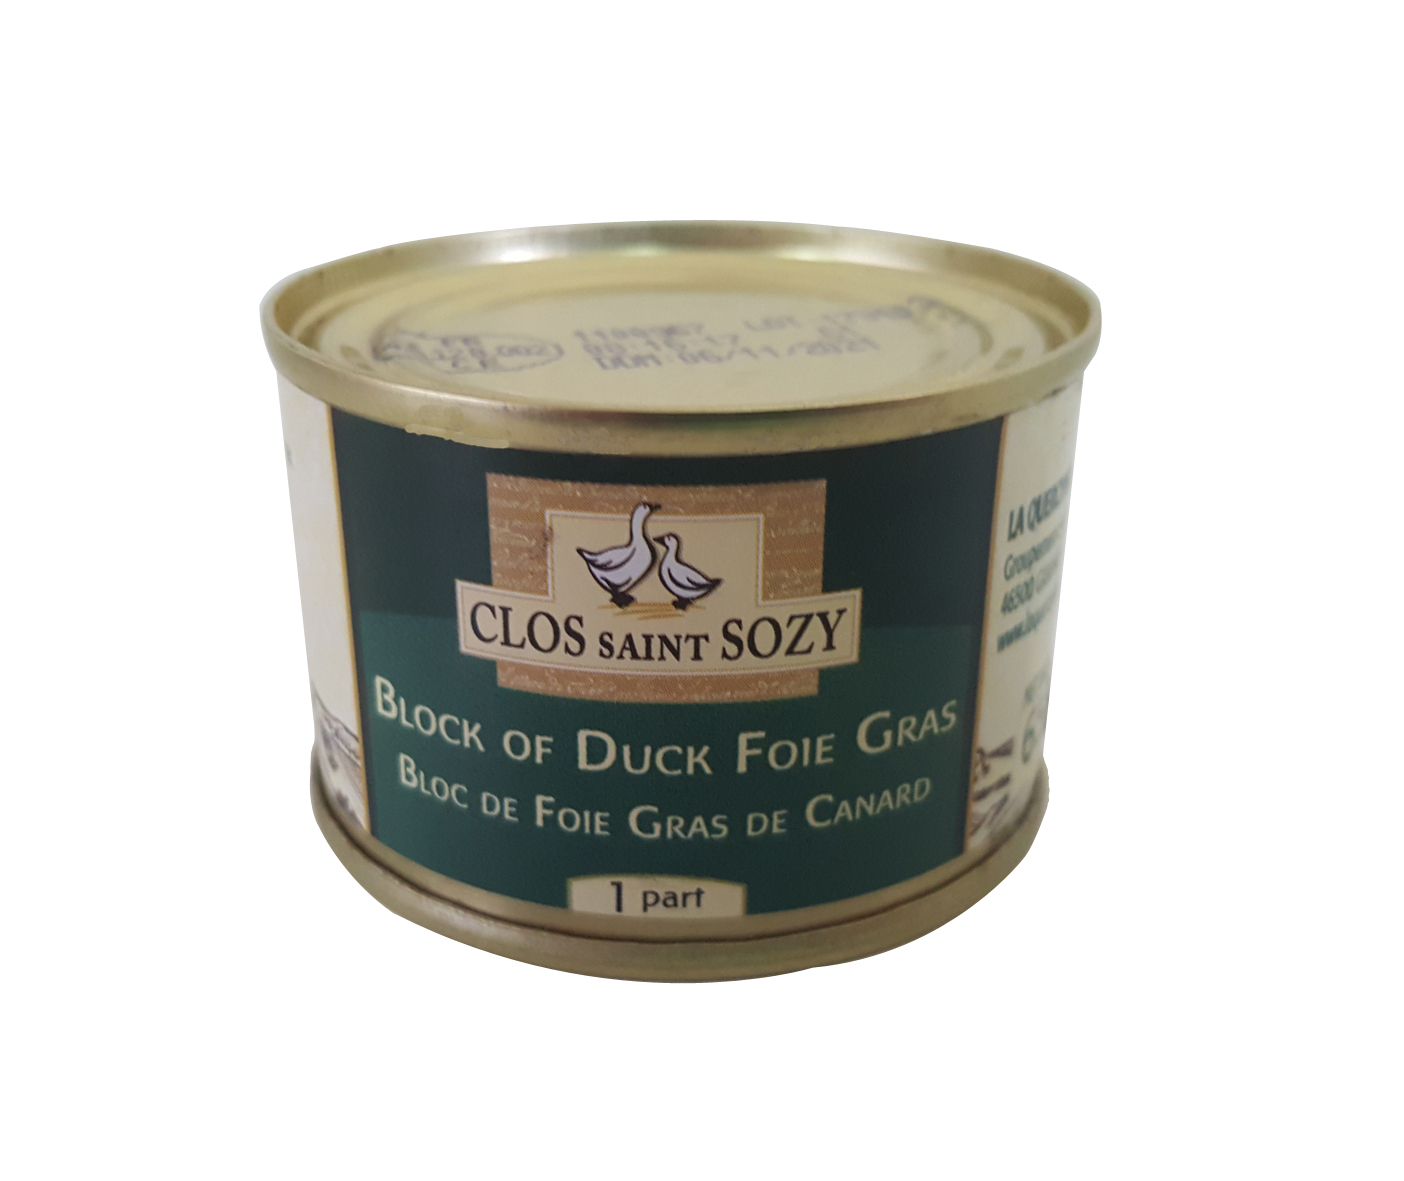 Block of Duck Foie Gras